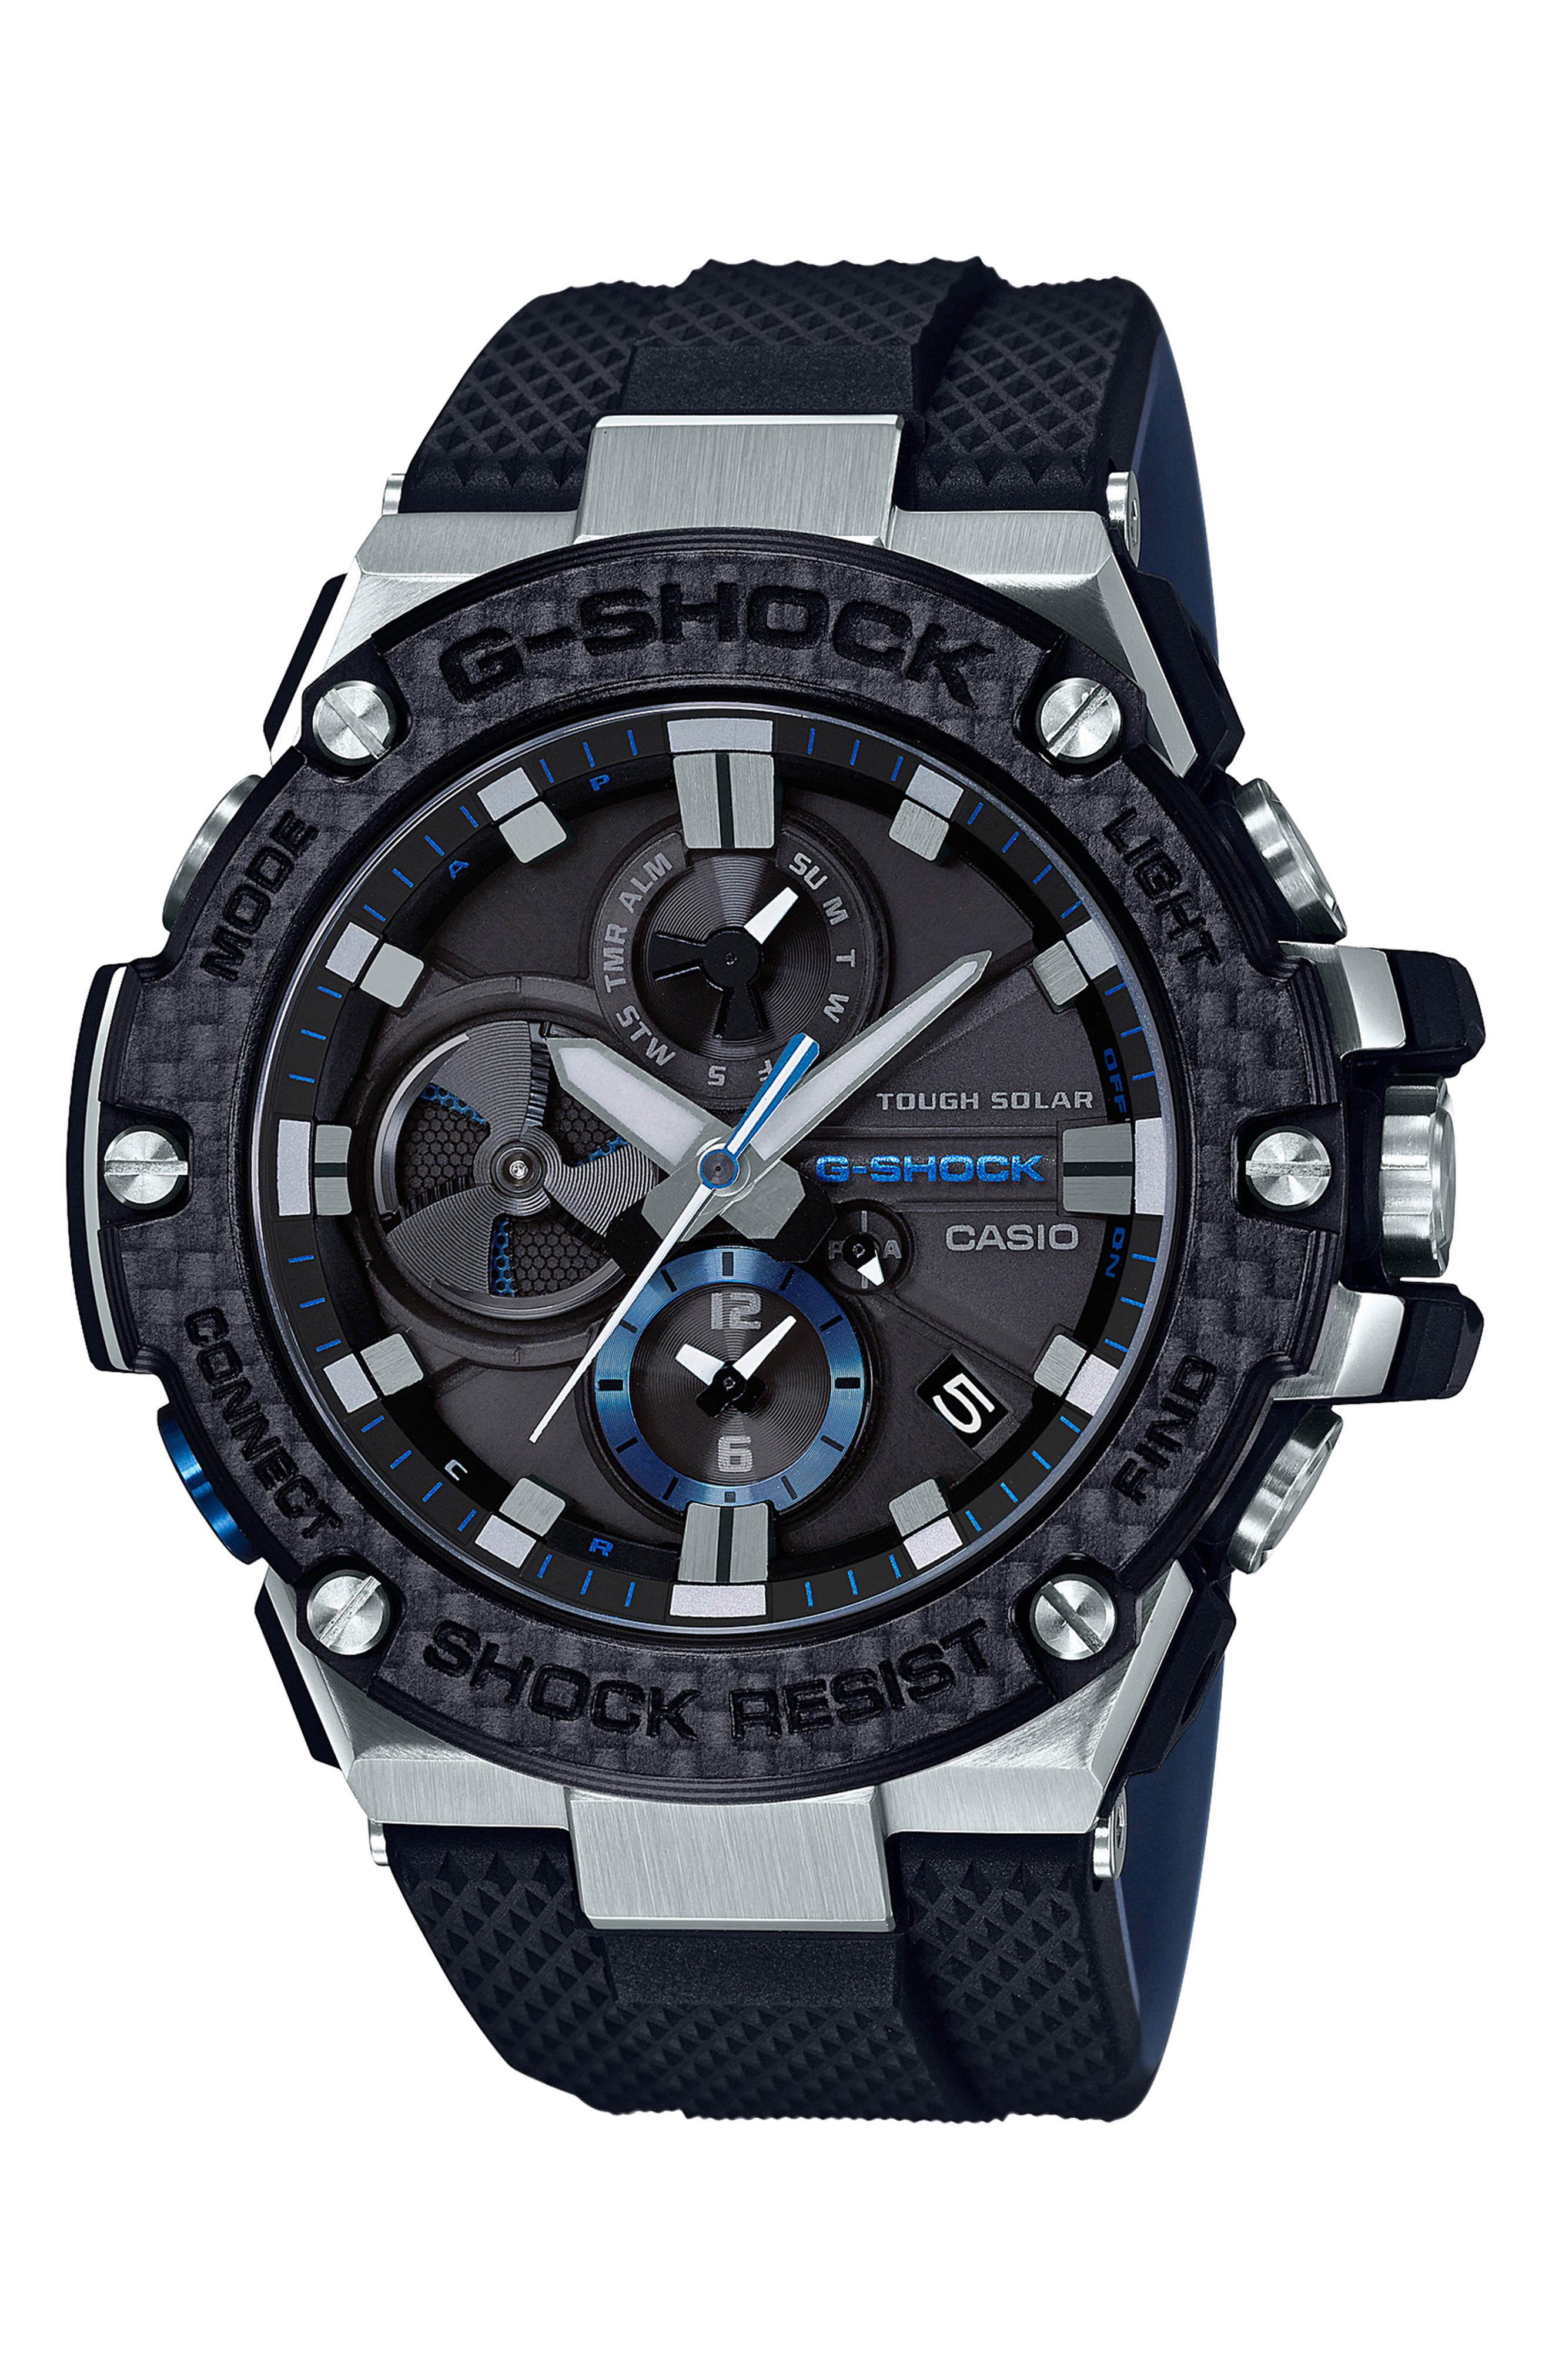 G-Shock G-Steel Resin Casio Analog Watch,                             Main thumbnail 1, color,                             BLACK/ SILVER